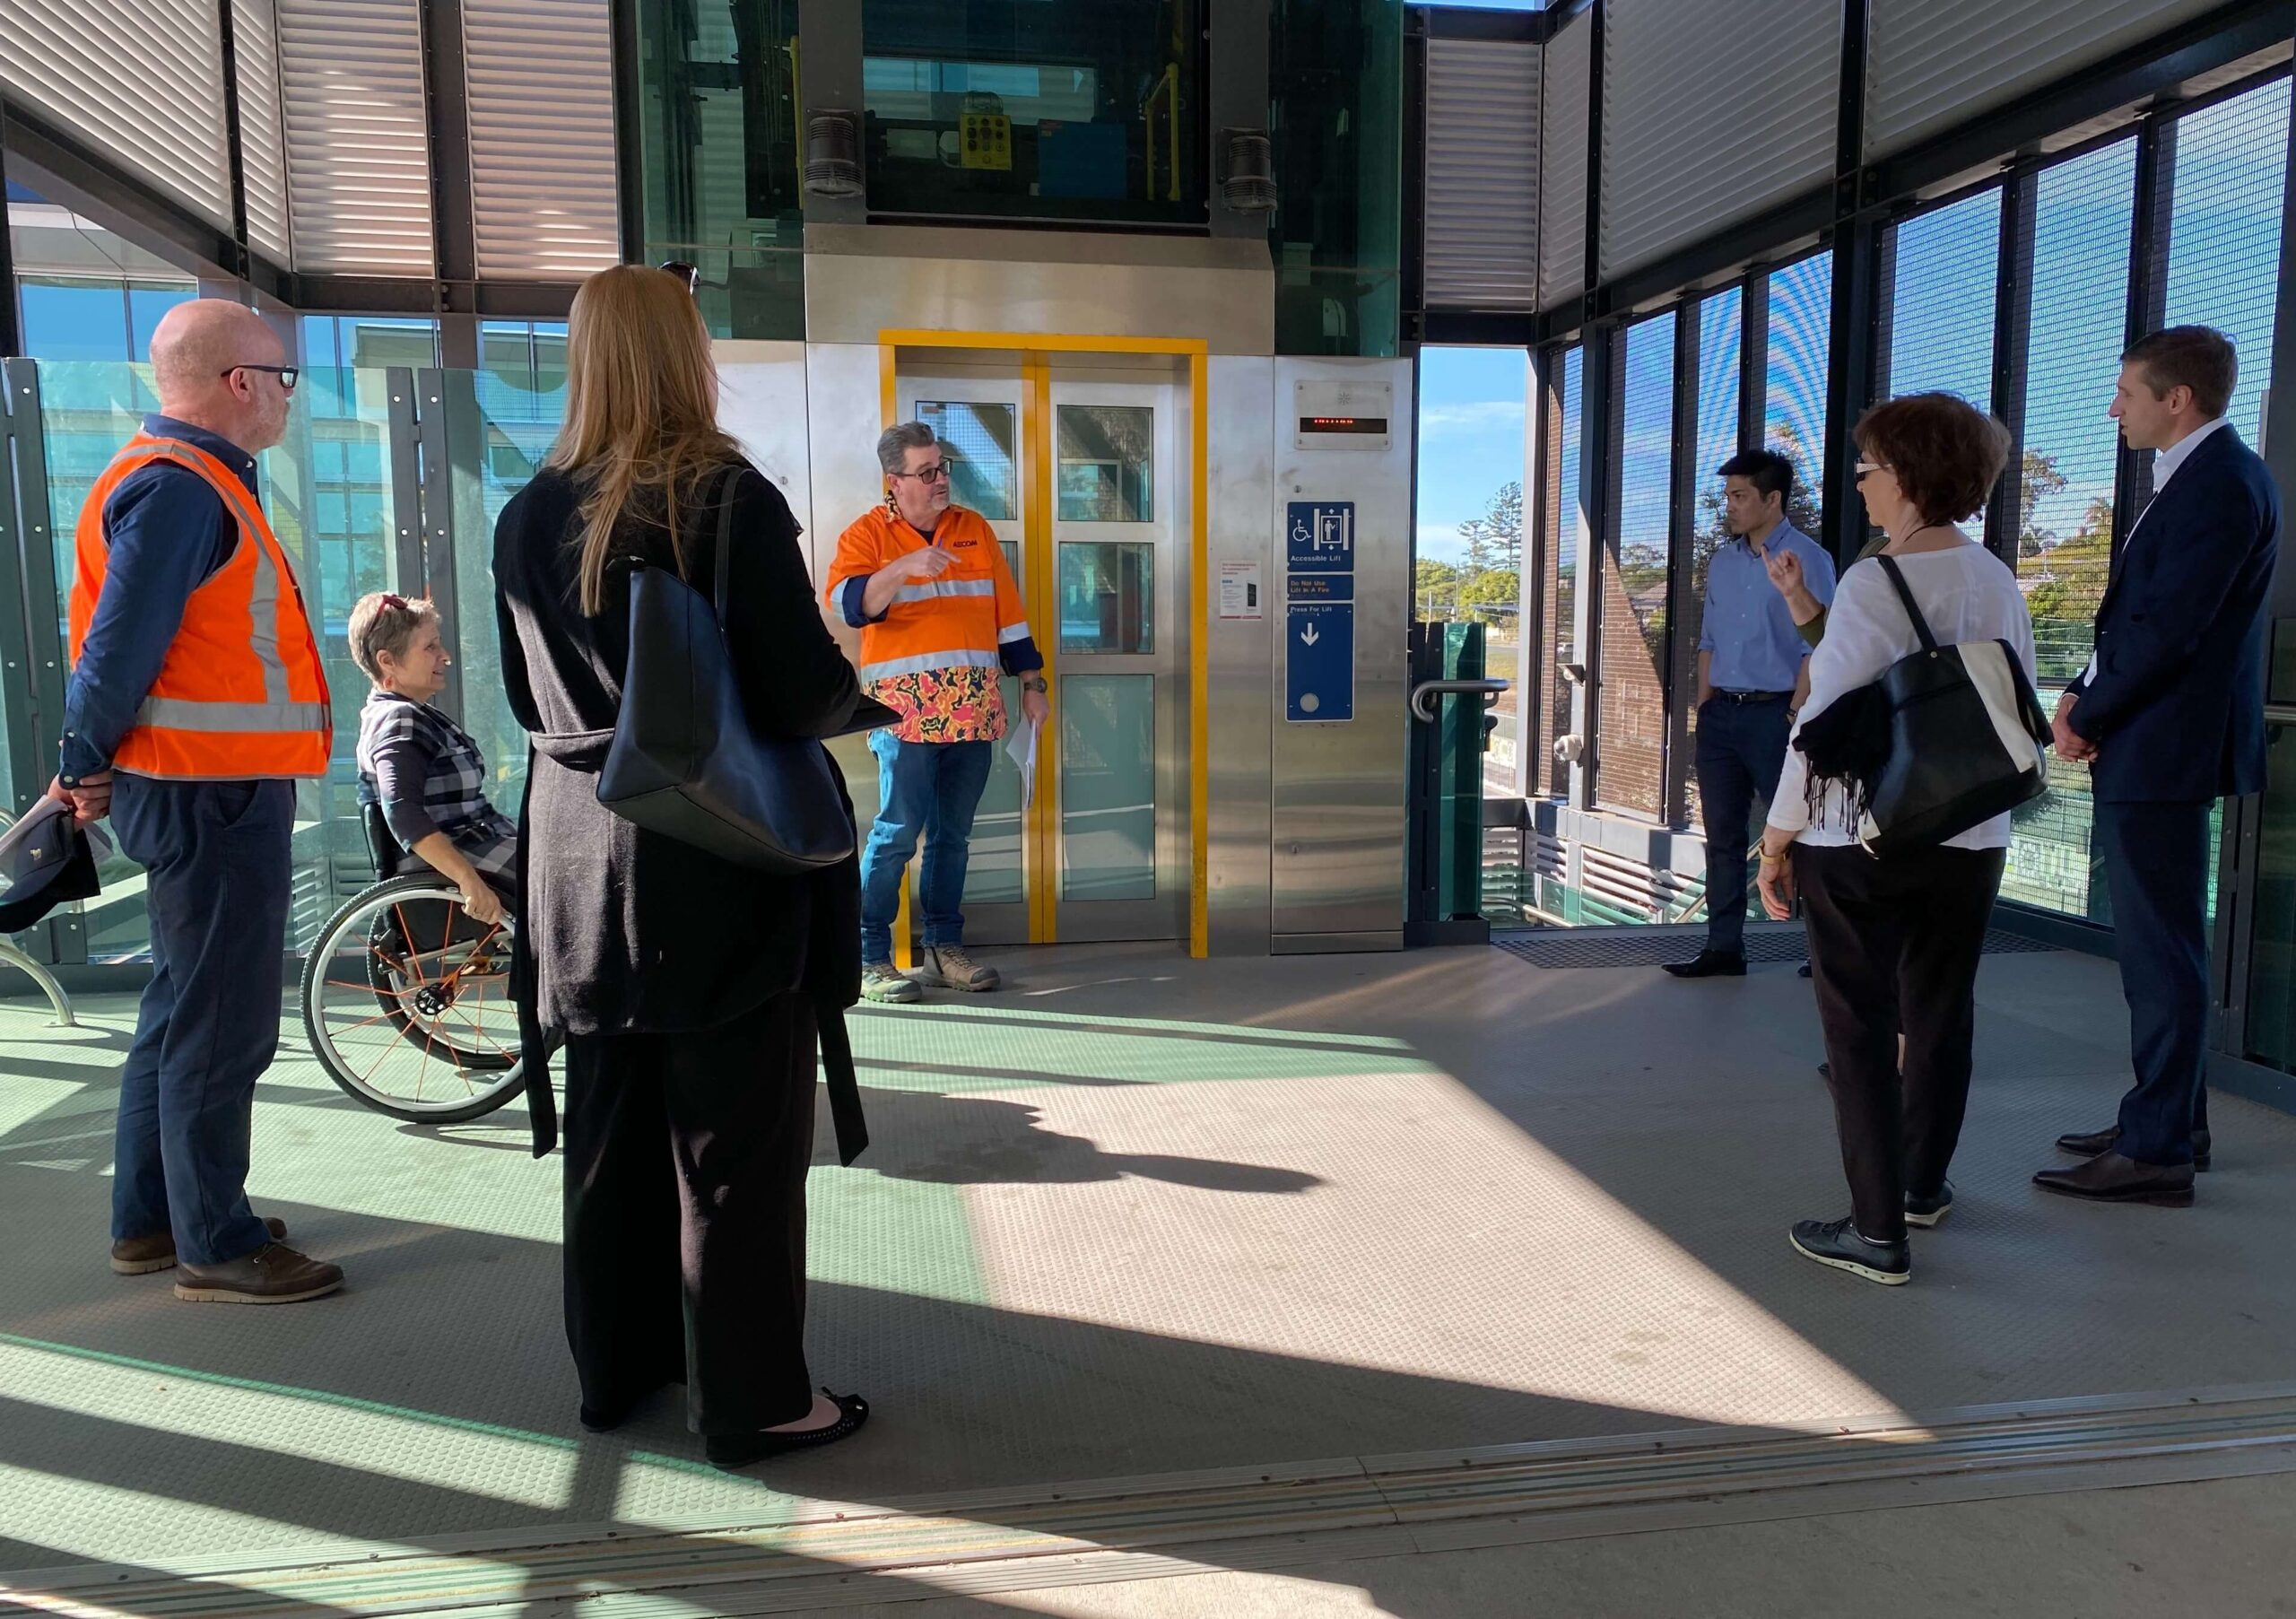 members of the Cross River Rail Accessibility Reference Group attend a site visit at Yeerongpilly station to provide feedback on station design including but not limited to lift design and signage